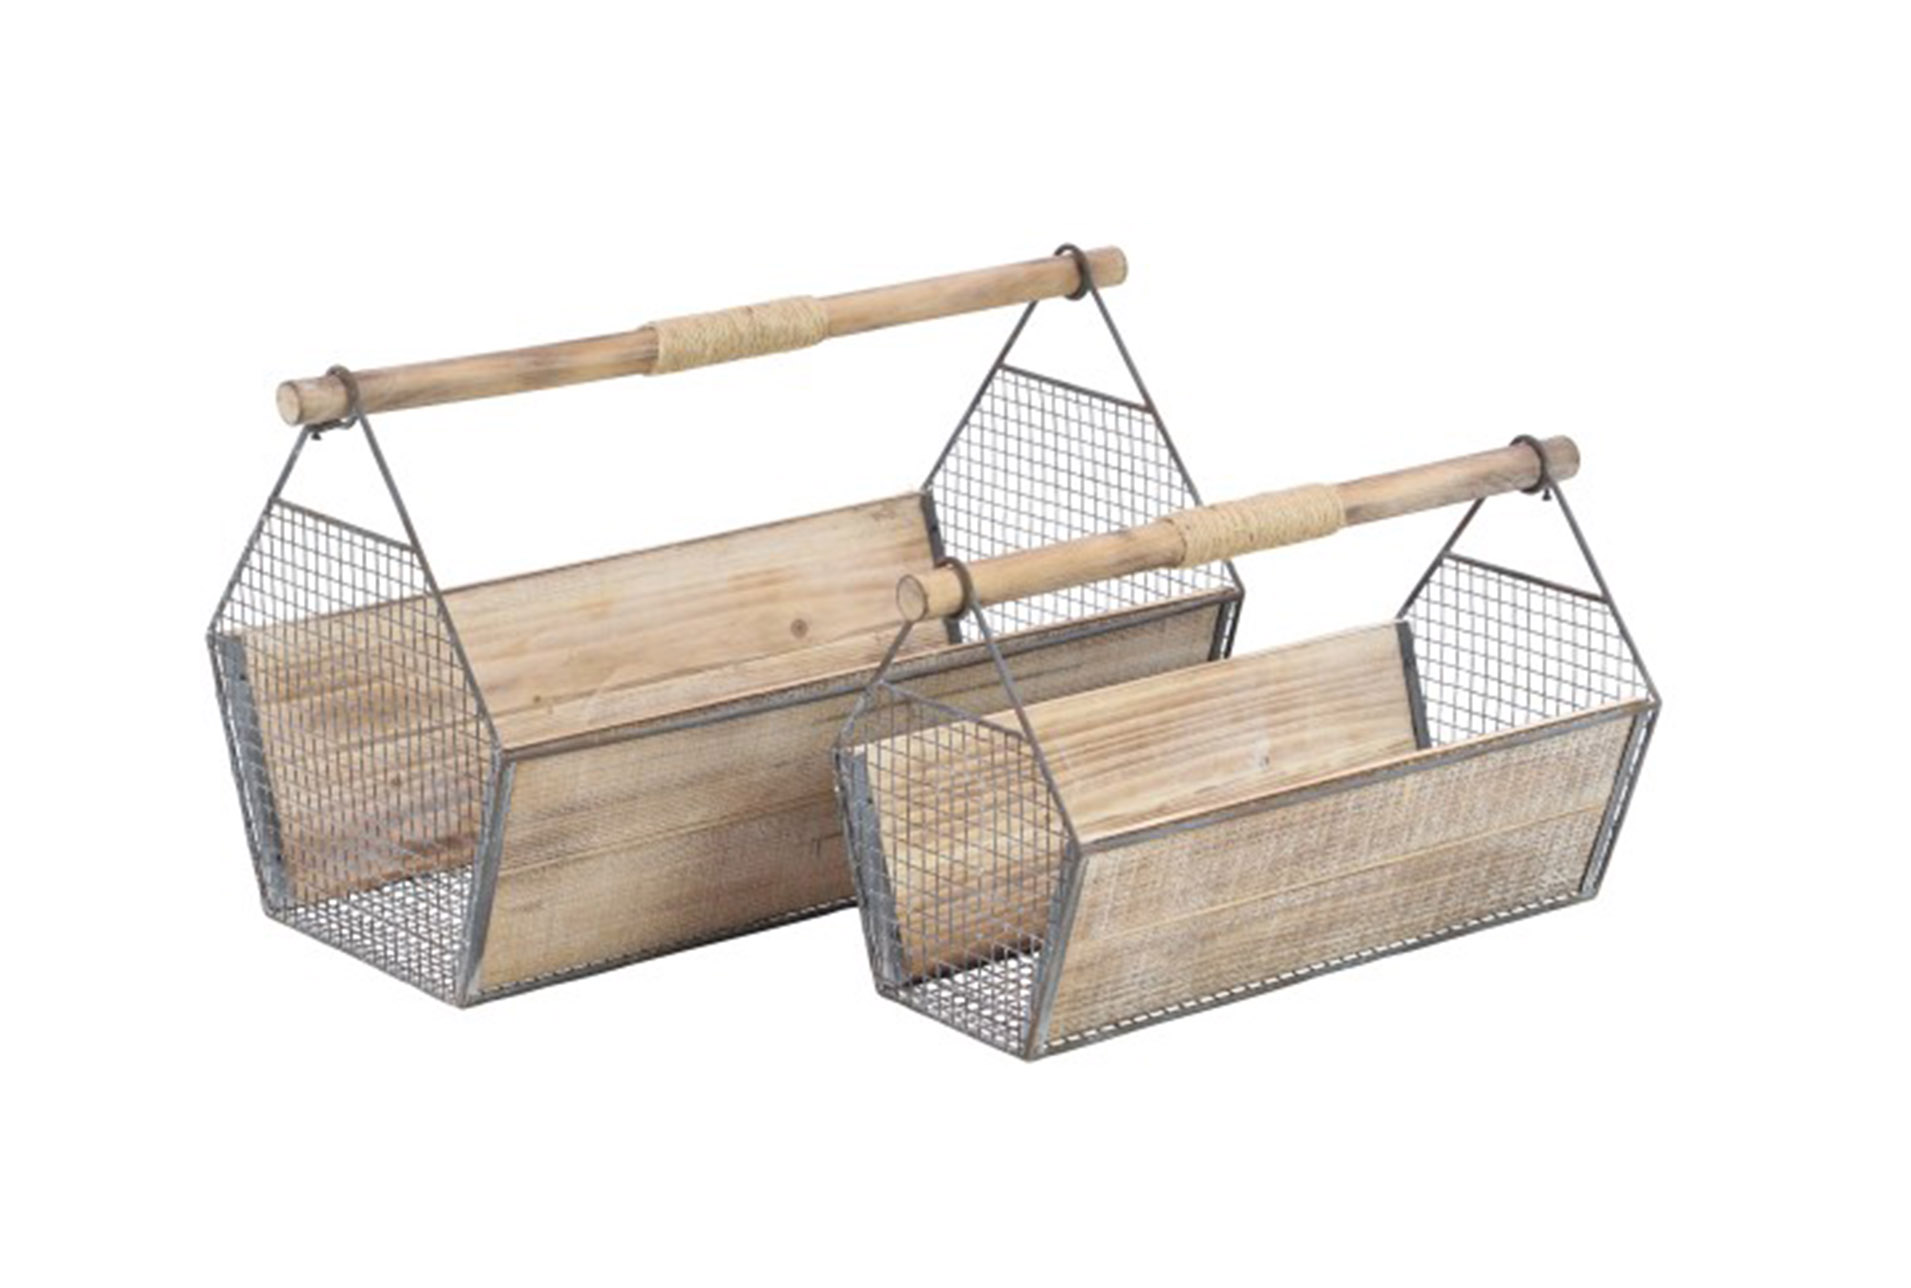 Etonnant Set Of 2 Wooden Garden Caddy (Qty: 1) Has Been Successfully Added To Your  Cart.